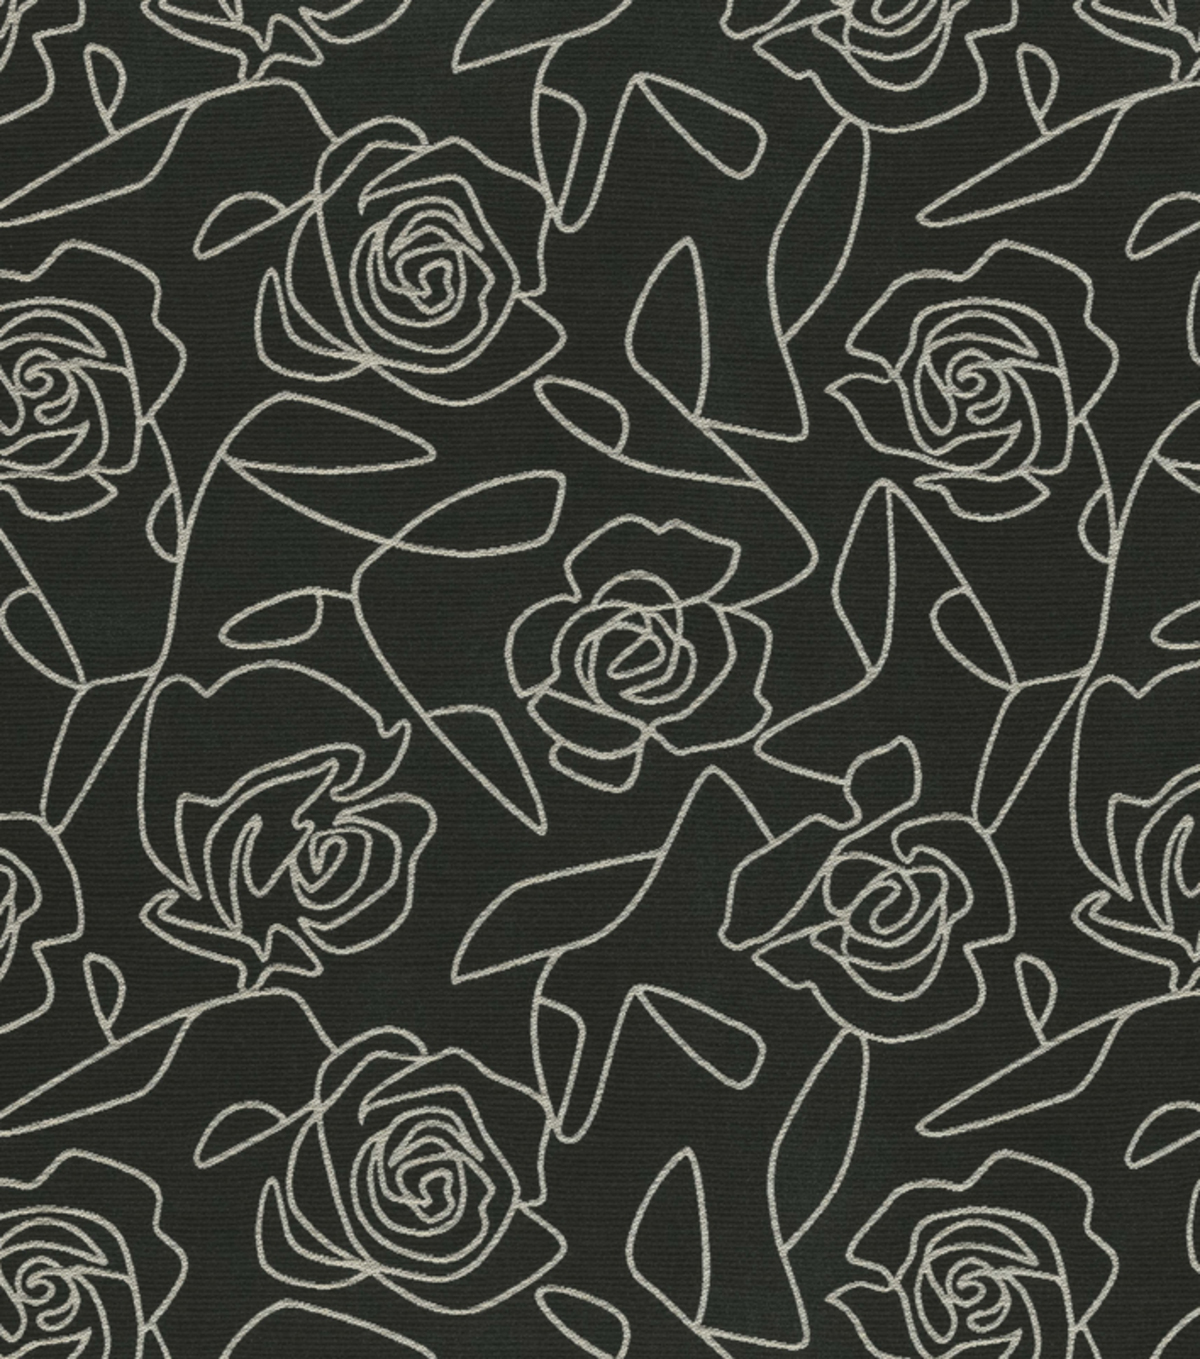 Home Decor 8\u0022x8\u0022 Fabric Swatch-Bed Of Roses Black